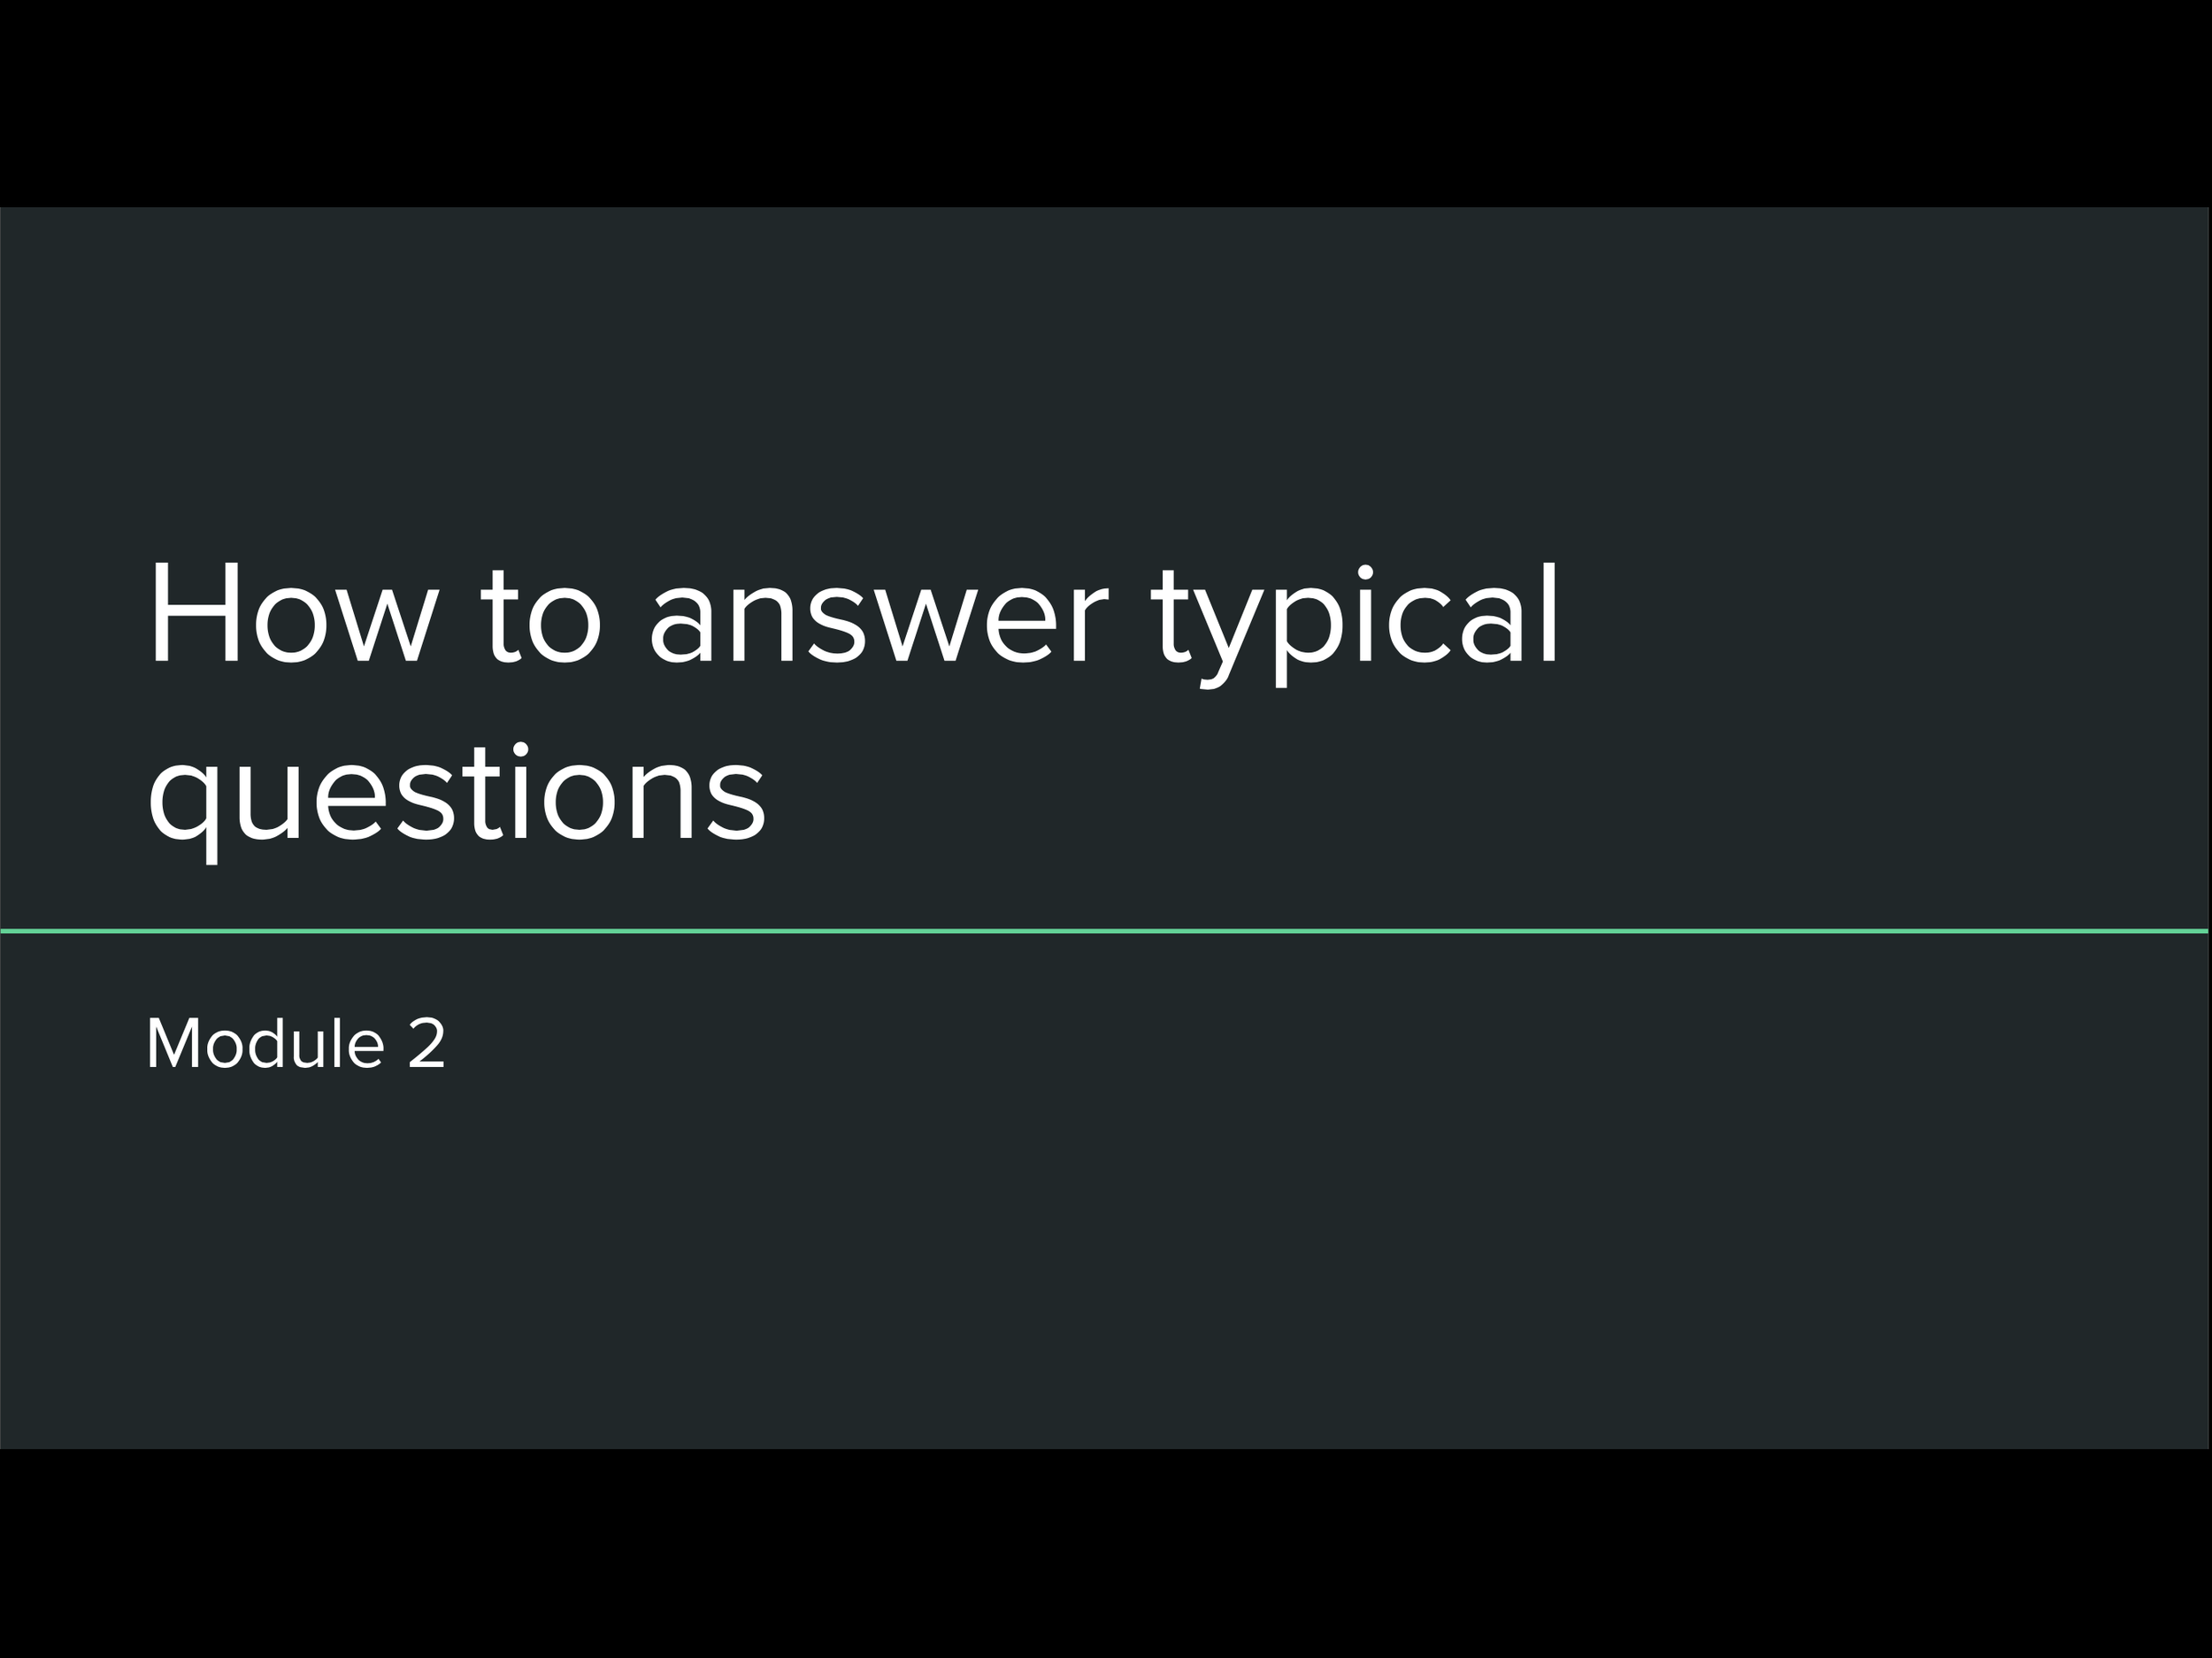 Module 2: How to answer typical questions